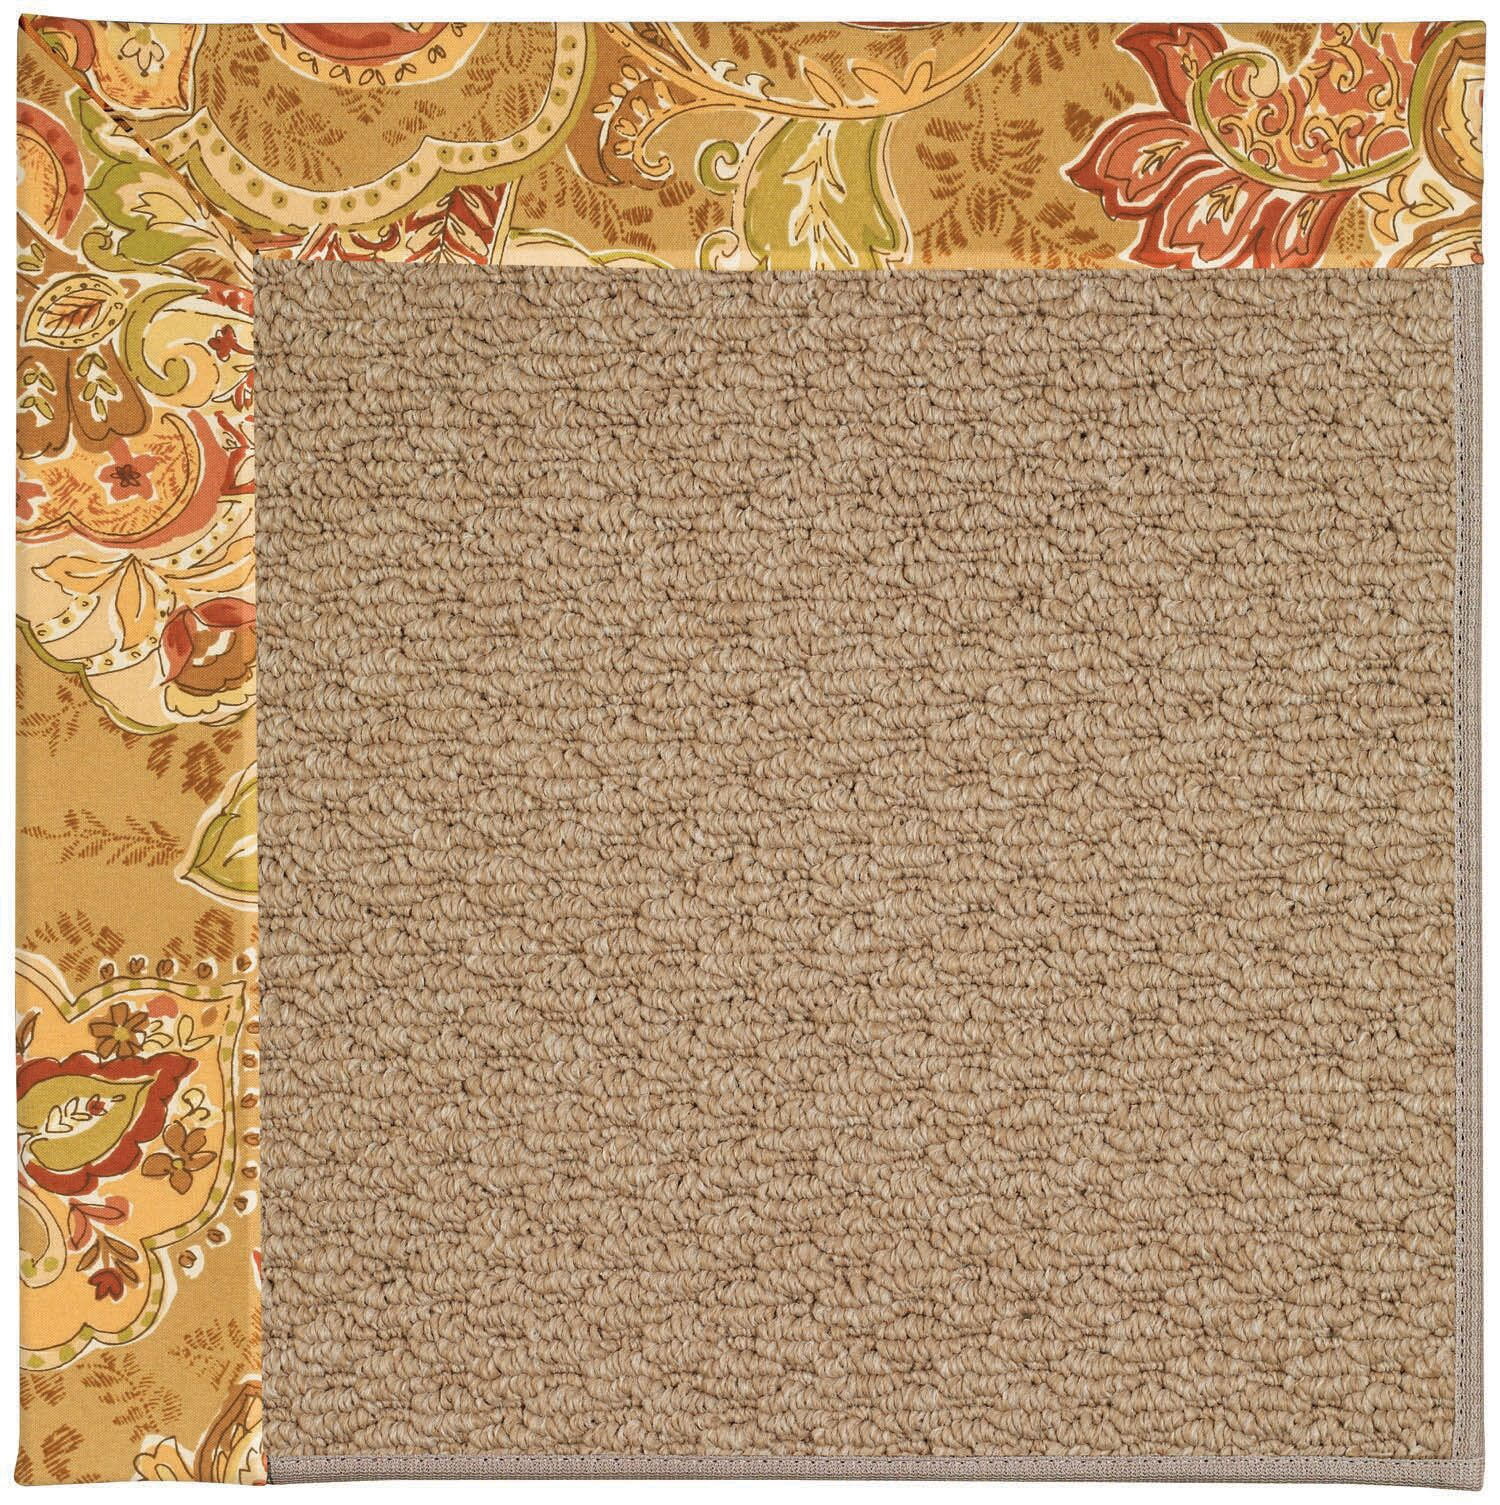 Lisle Machine Tufted Bronze Flowers/Brown Indoor/Outdoor Area Rug Rug Size: Square 4'